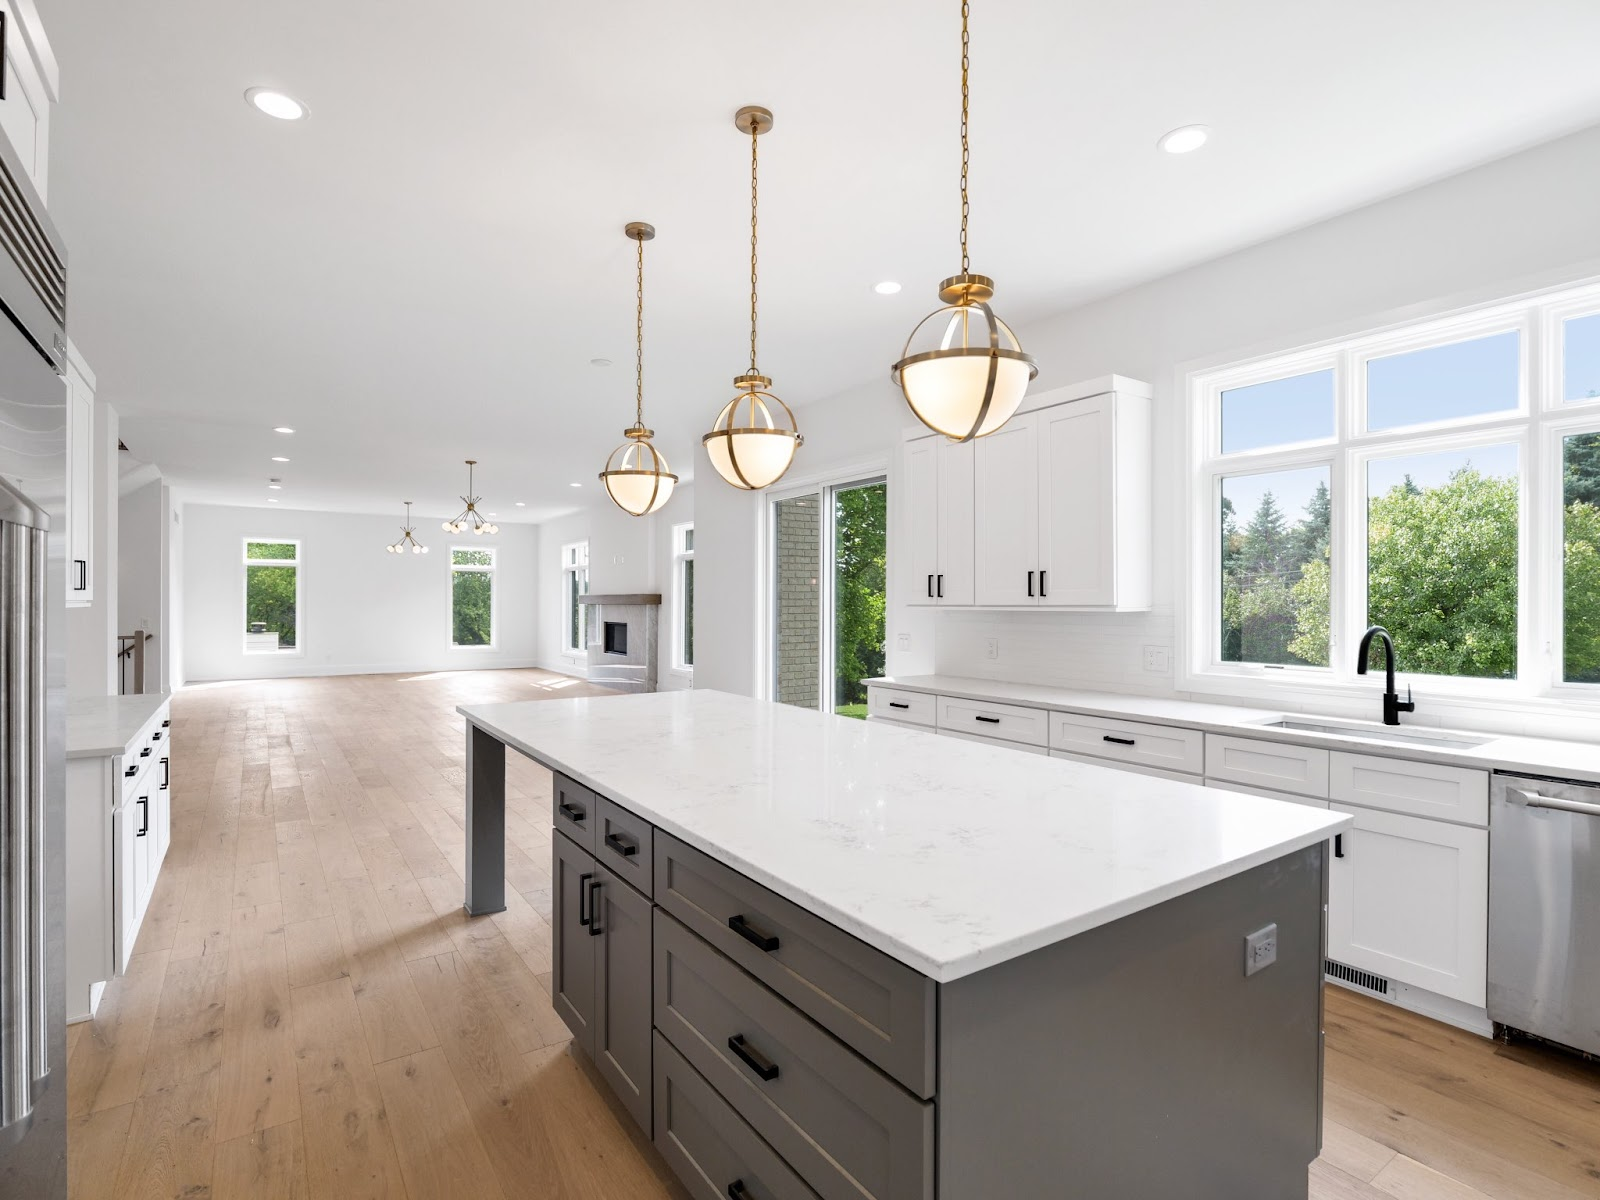 large modern kitchen with white and grey shaker cabinets and plenty of natural lighting. matte black hardware and faucet tie together the design